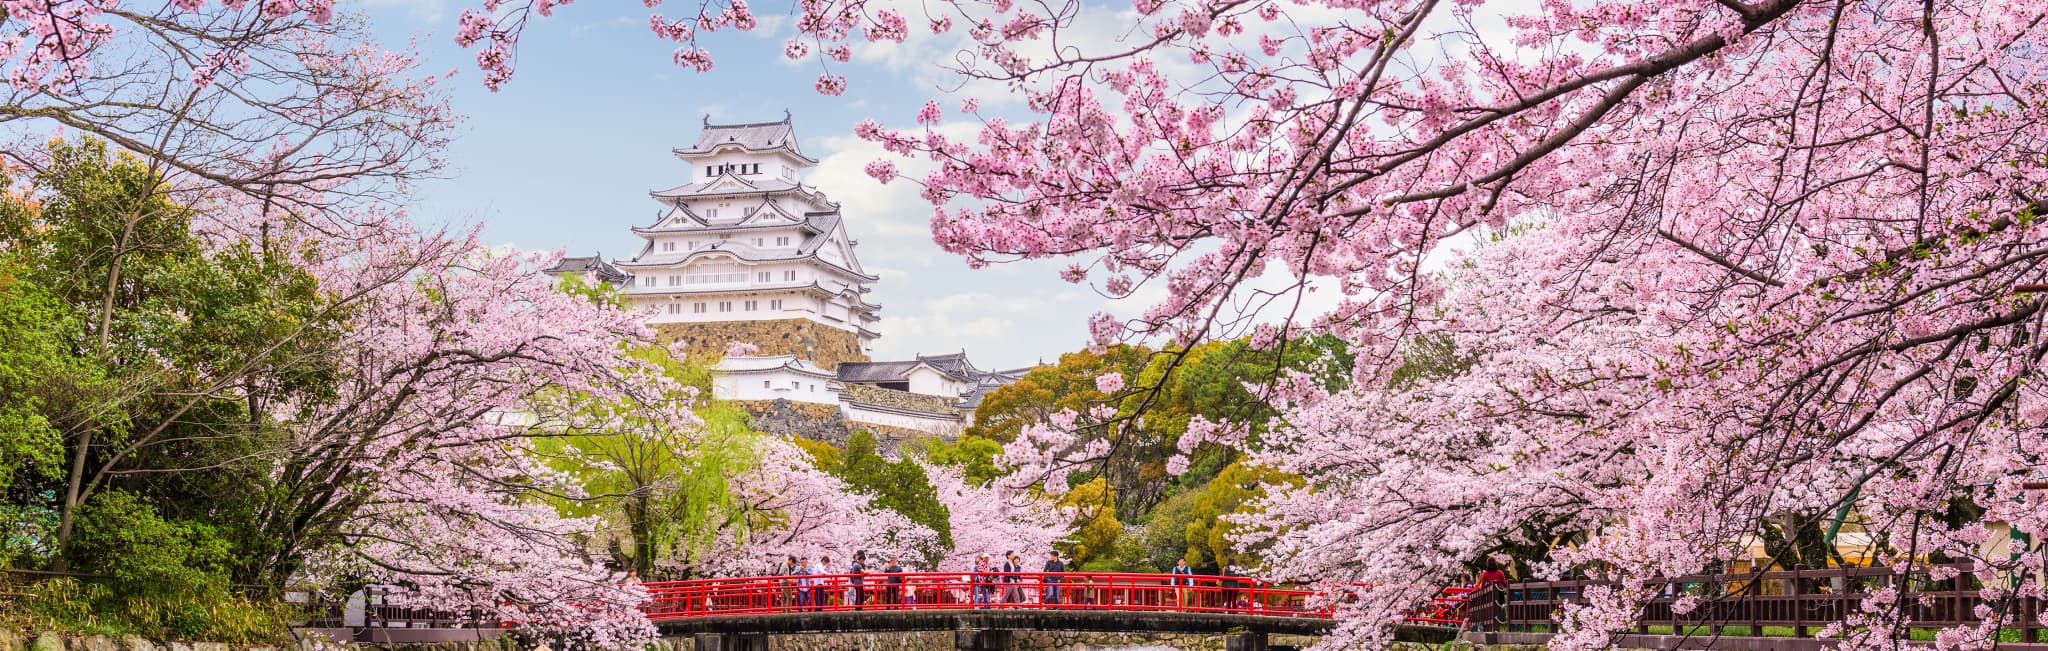 Japanese samurai castle with blooming cherry blossom trees.